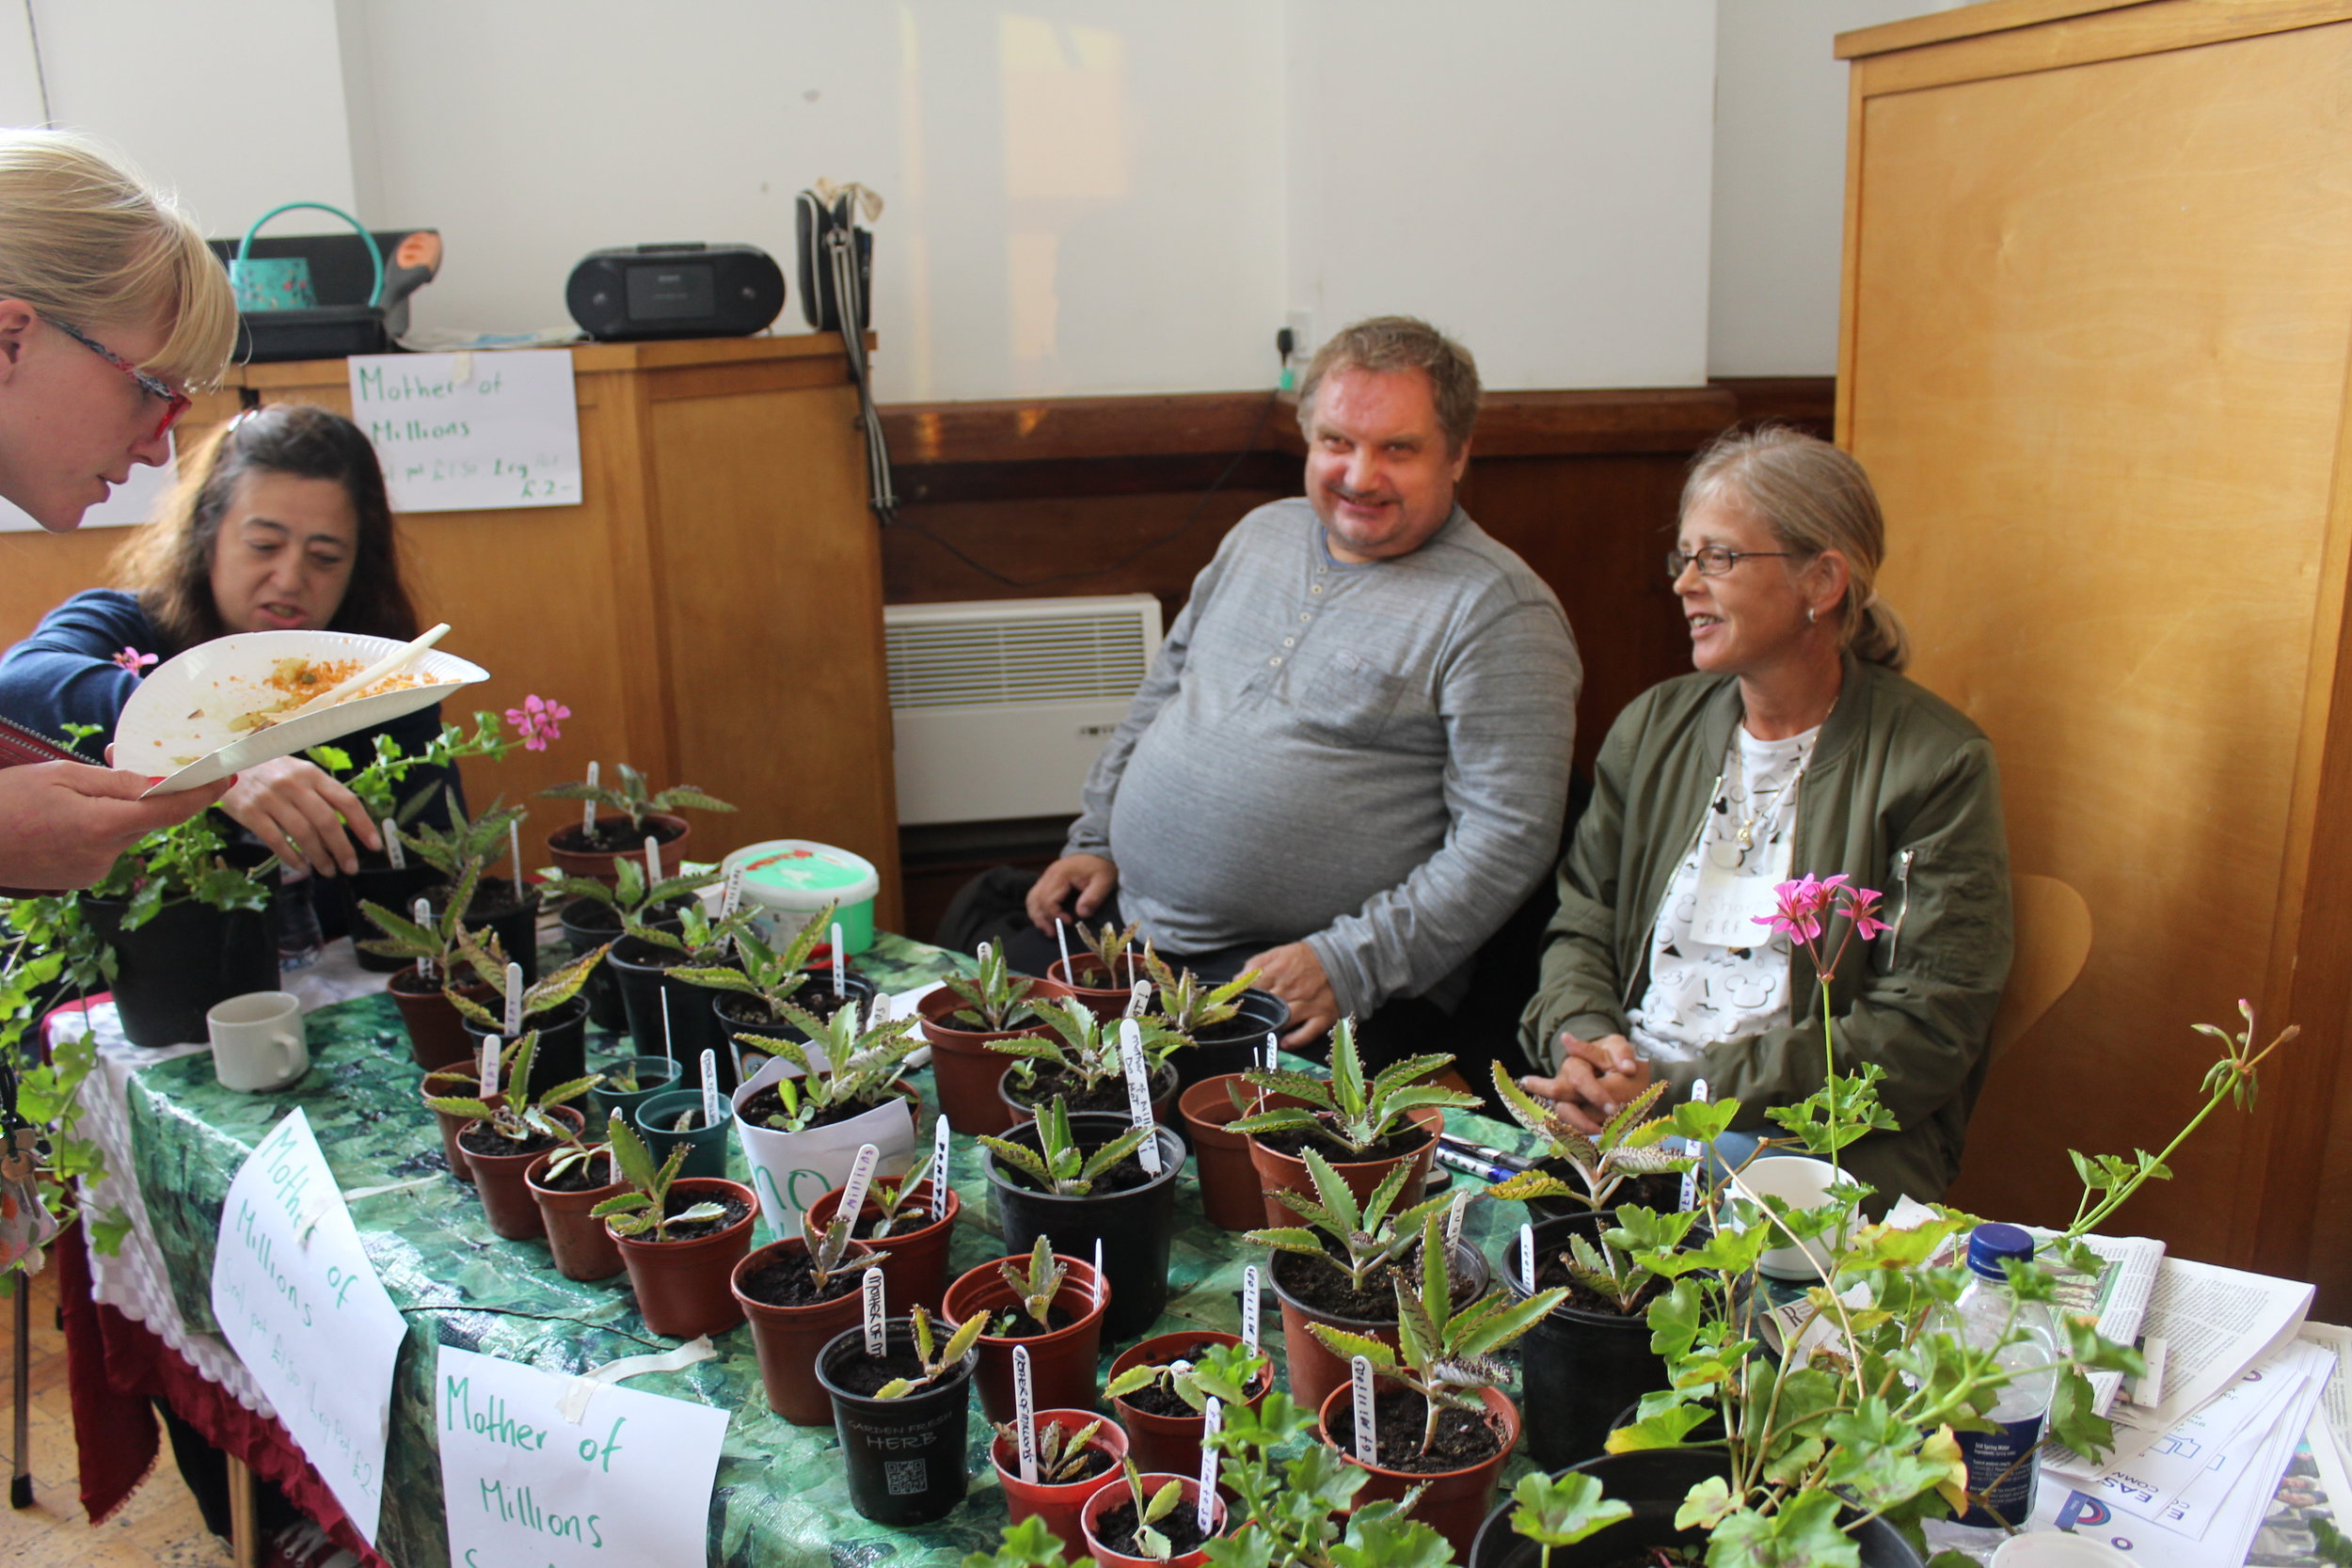 Bromley by Bow gardening group